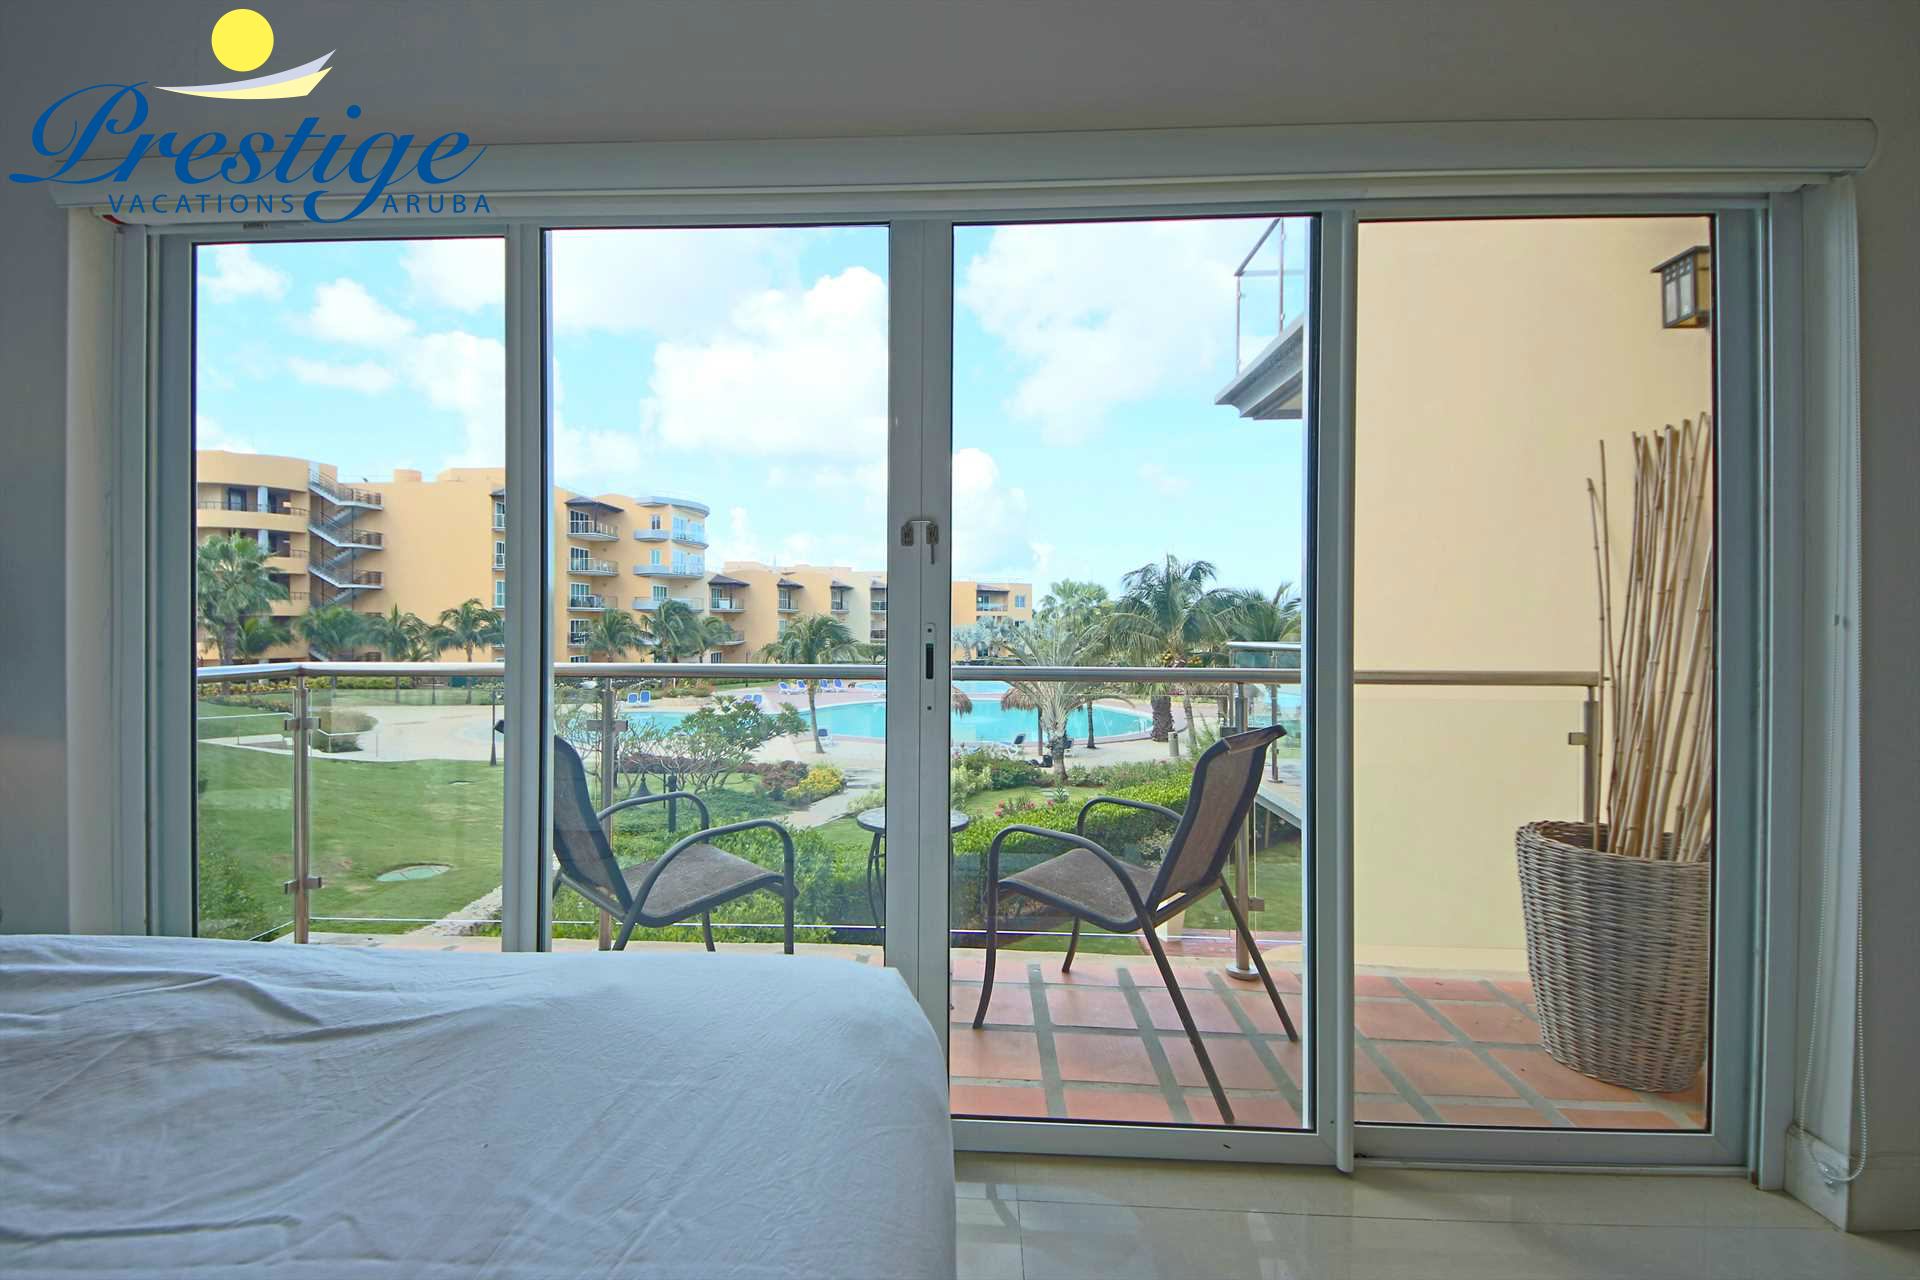 The master bedroom balcony with amazing resort pool and ocean views